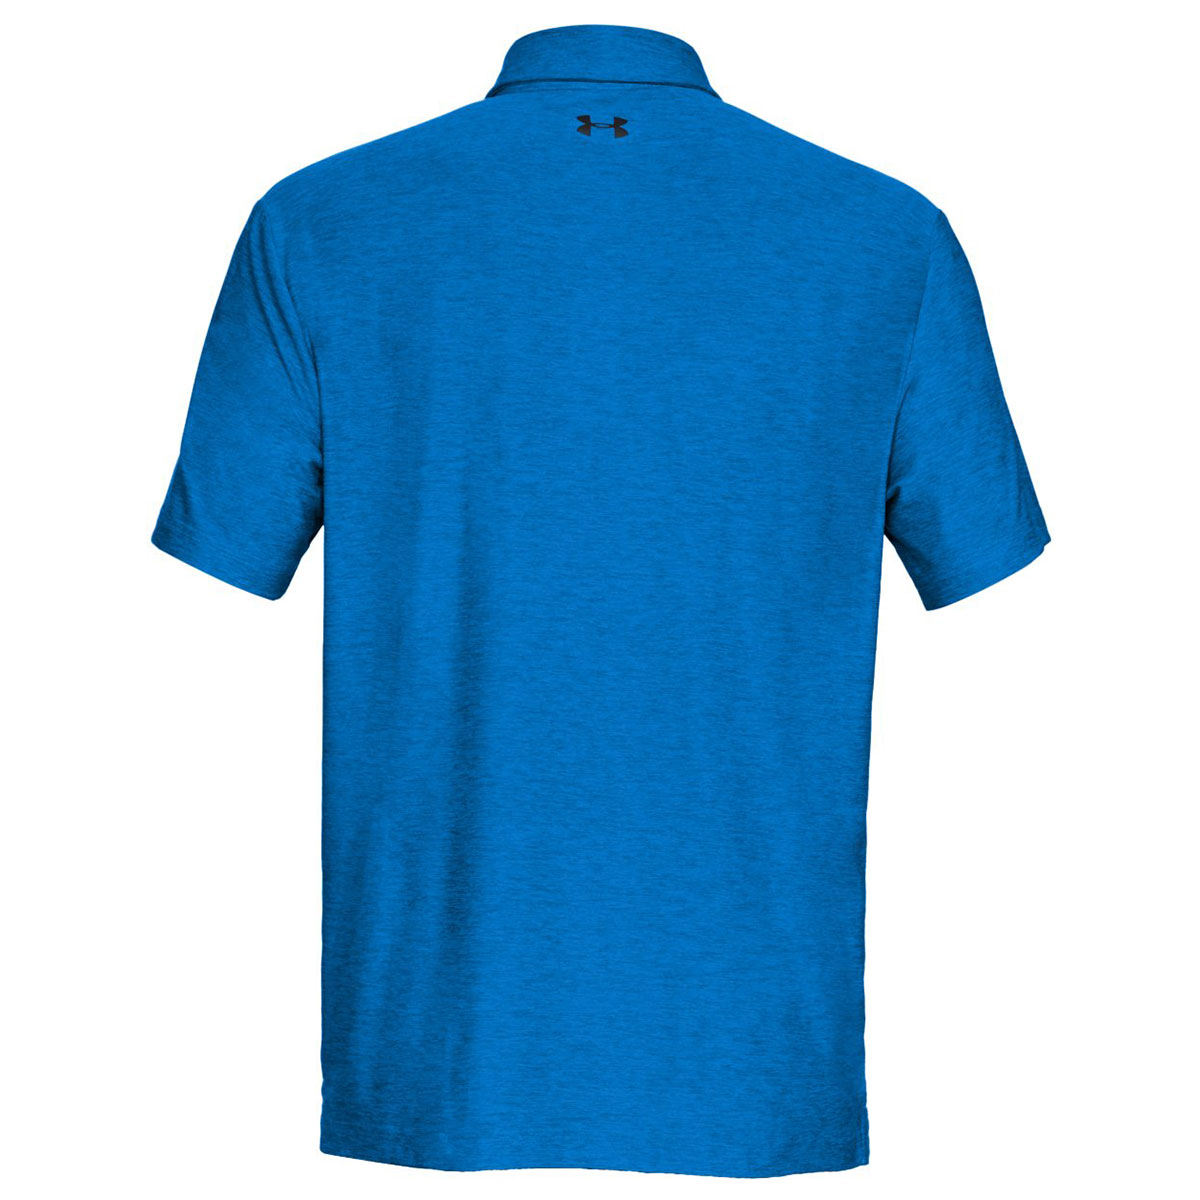 Under-Armour-Mens-UA-Playoff-Performance-Golf-Polo-Shirt-33-OFF-RRP thumbnail 36